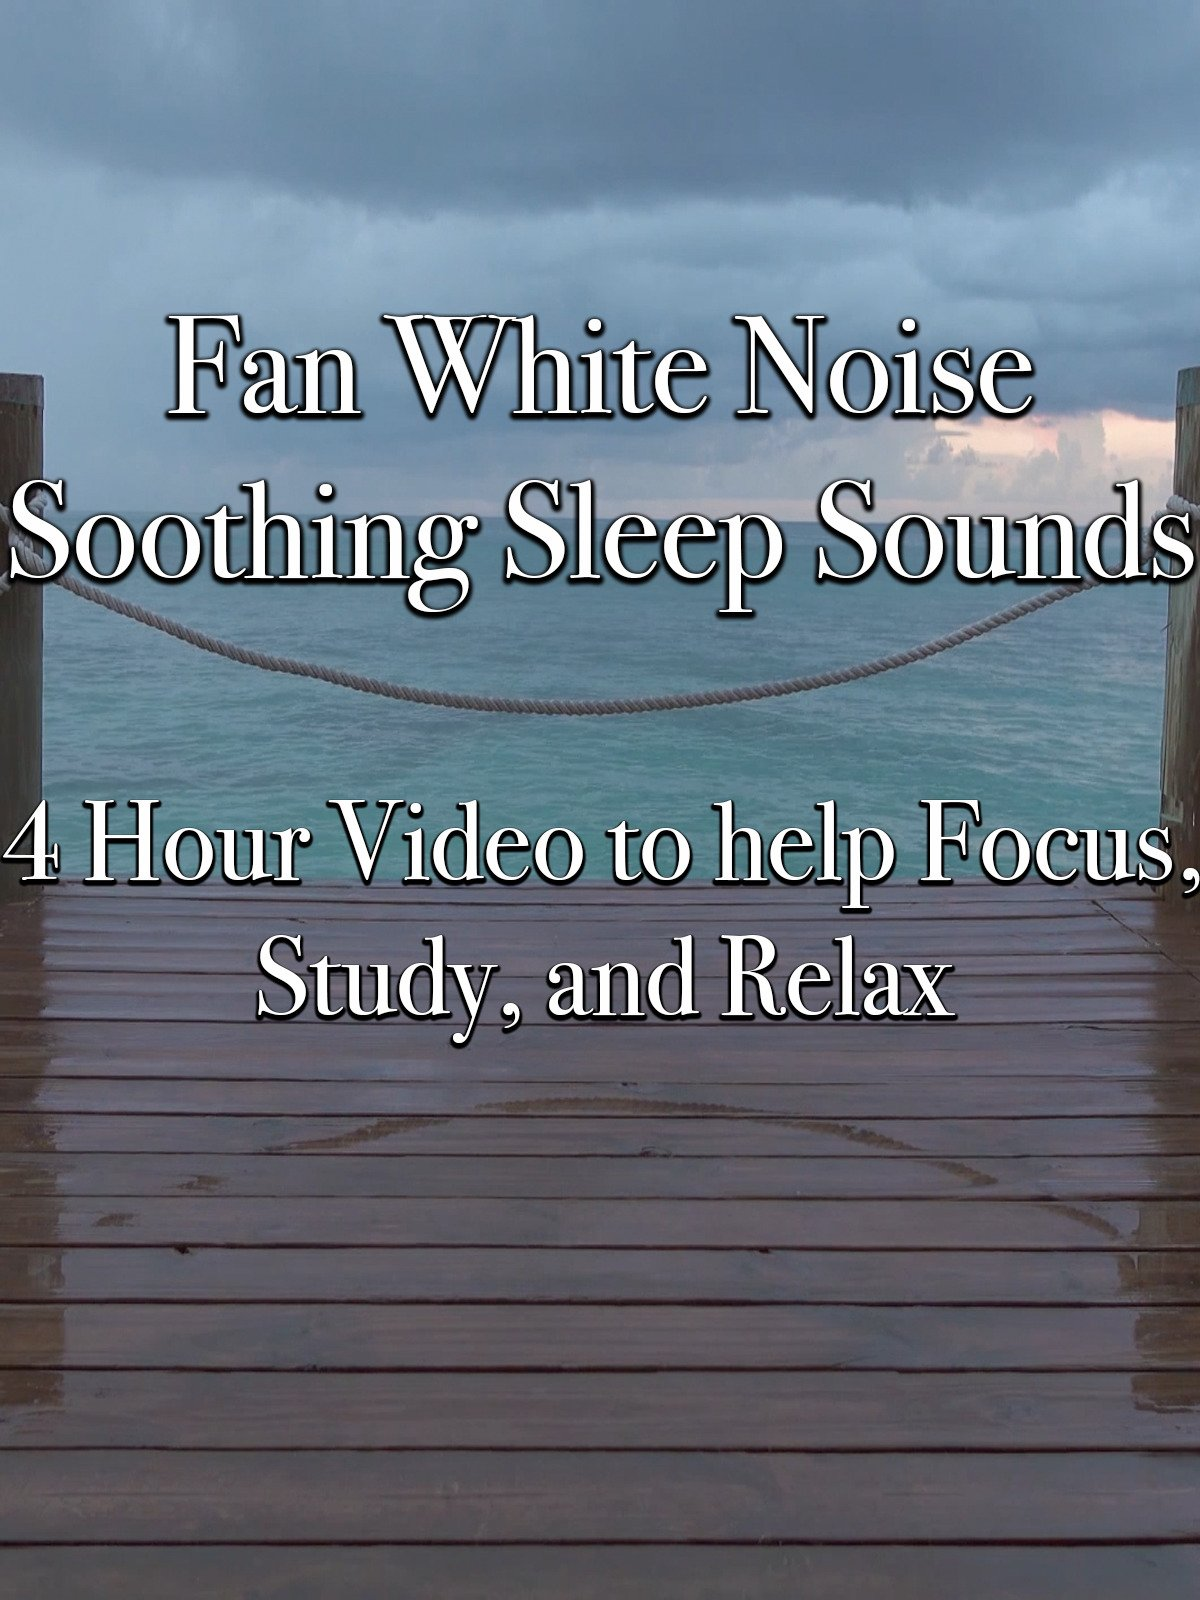 Fan White Noise Soothing Sleep Sounds 4 Hour Video to help Focus, Study, and Relax